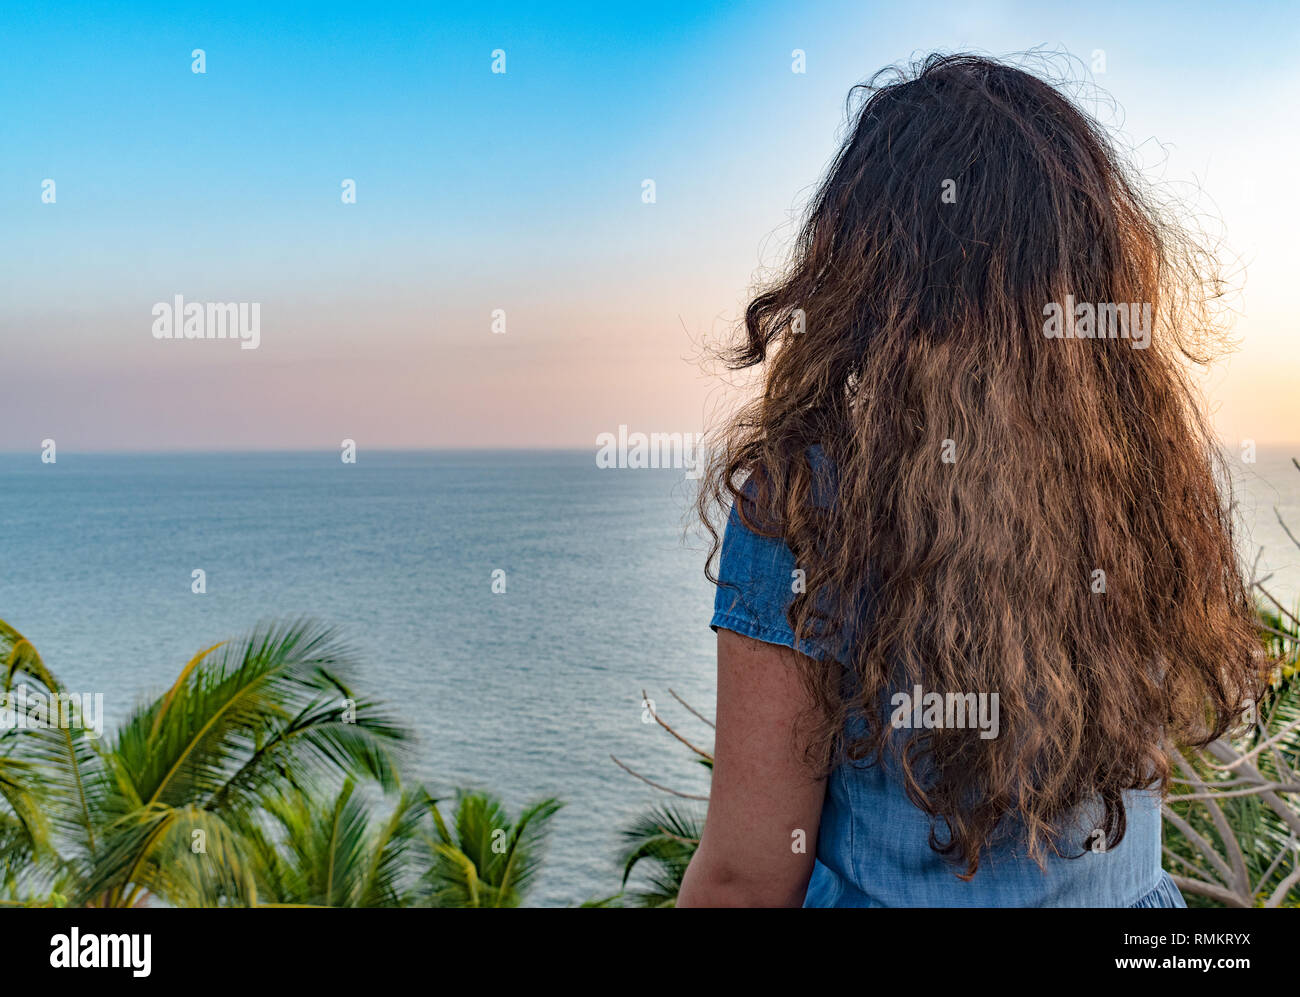 Beautiful photo of a Brunette teenage girl with golden colored hair enjoying her dream vacation or solo trip to an exotic island. - Stock Image